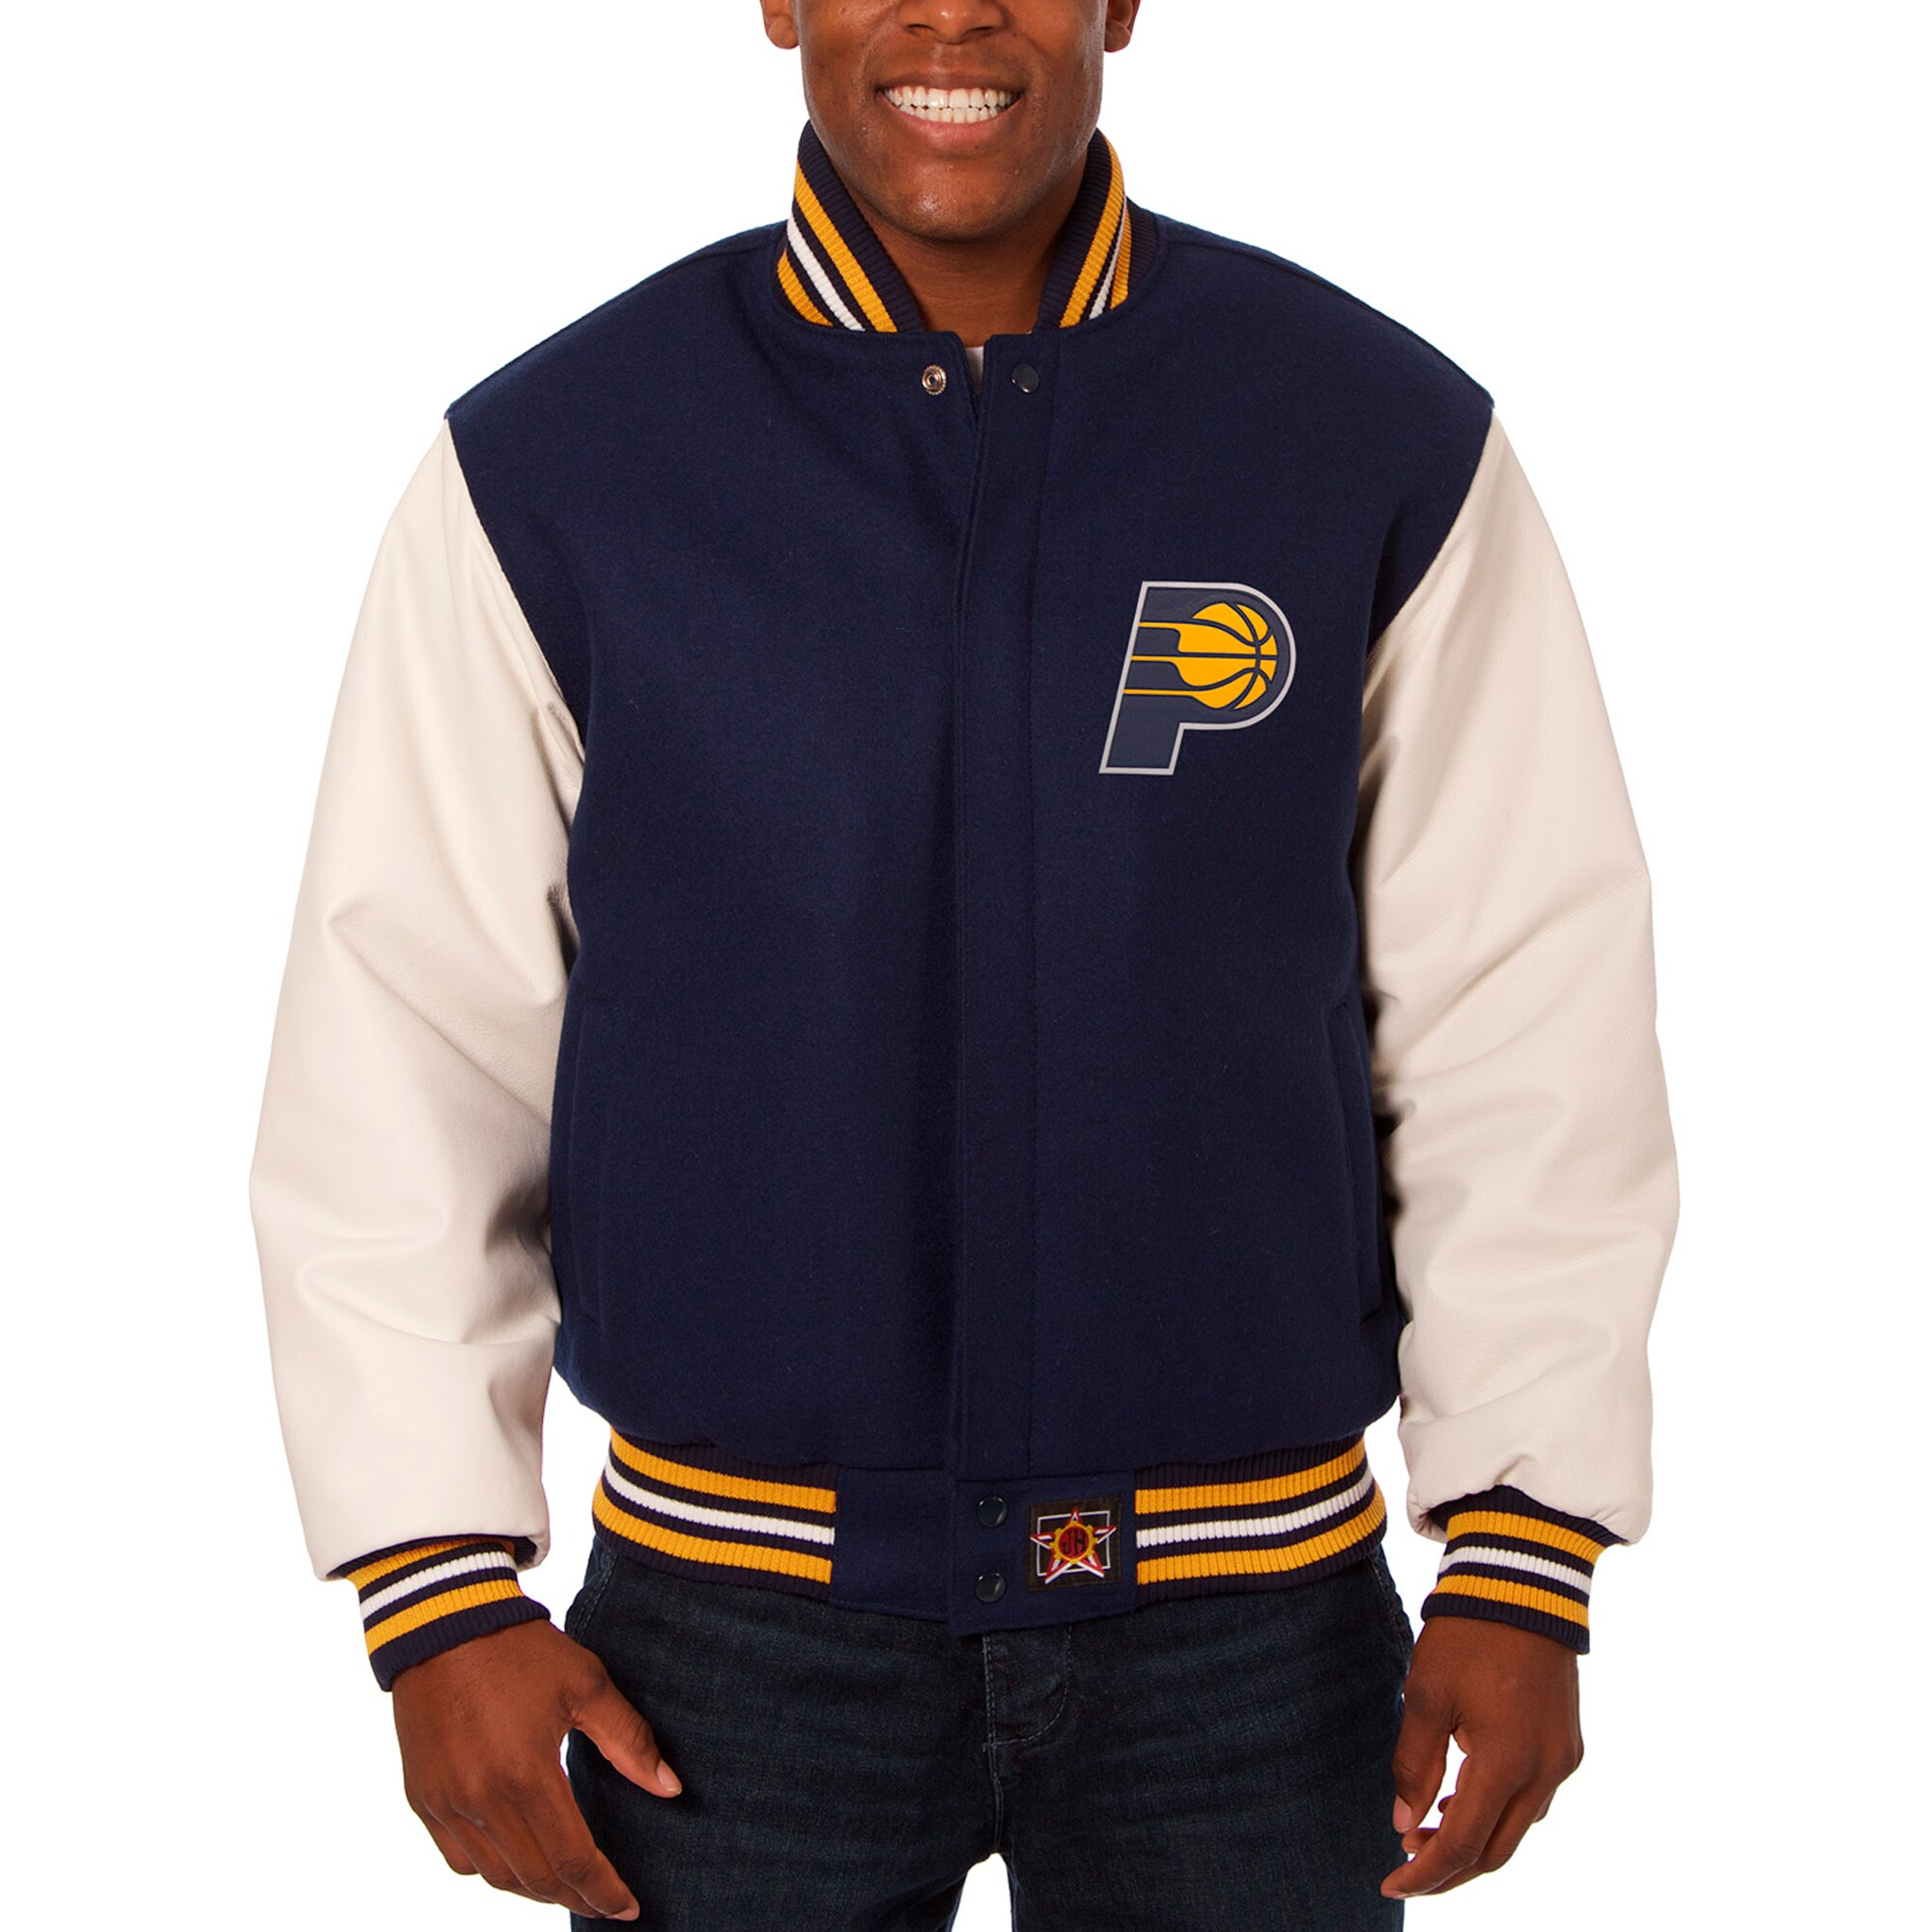 Indiana Pacers JH Design Big & Tall Wool & Leather Full-Snap Jacket - Navy/White